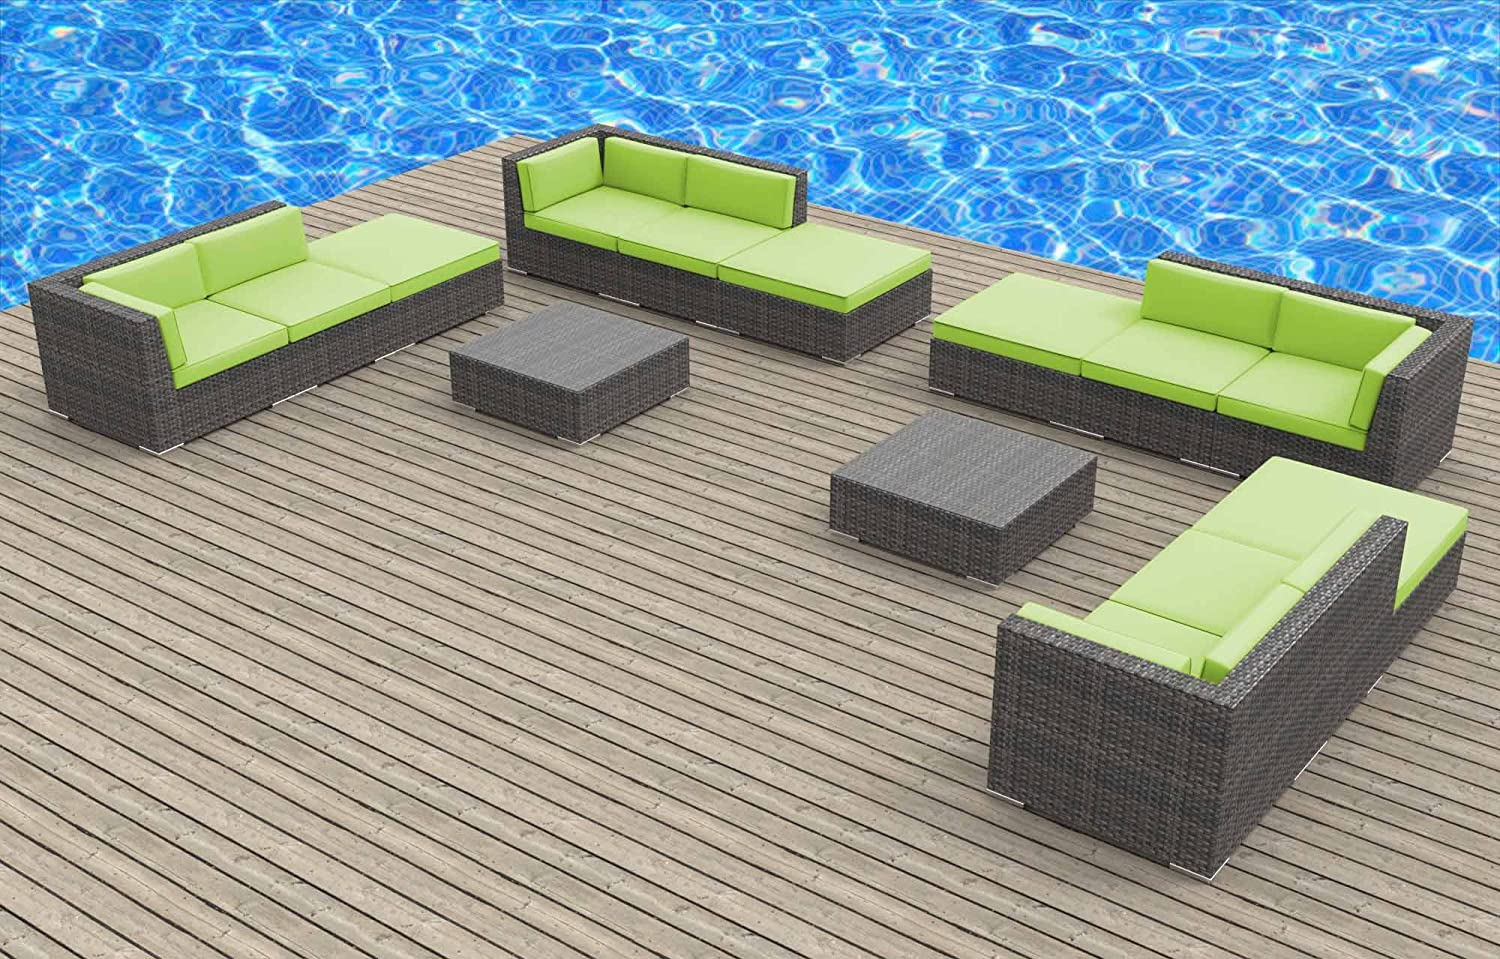 www.urbanfurnishing.net Urban Furnishing - KEY WEST 14pc Modern Outdoor Backyard Wicker Patio Furniture Sofa Sectional Couch Set - Lime Green at Sears.com